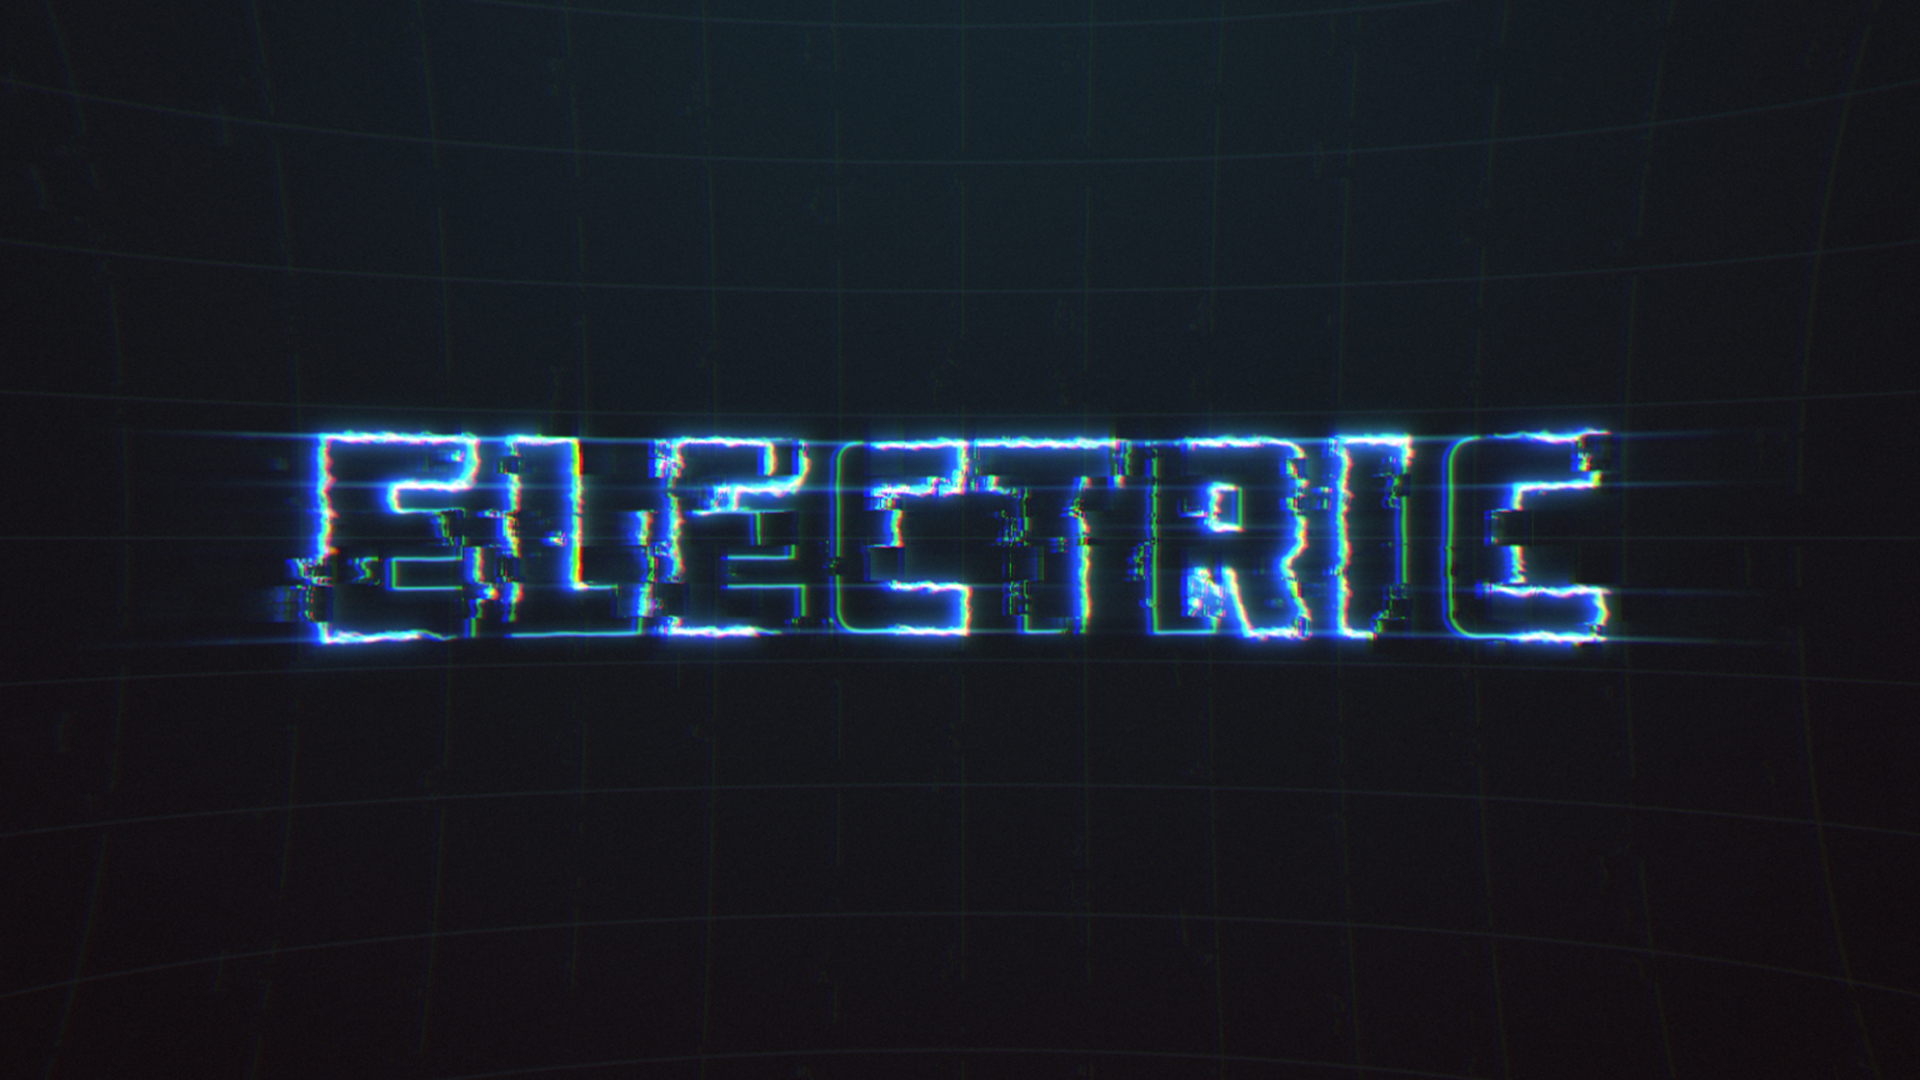 Electrical Pulsing Text Reveal CreativeDojo